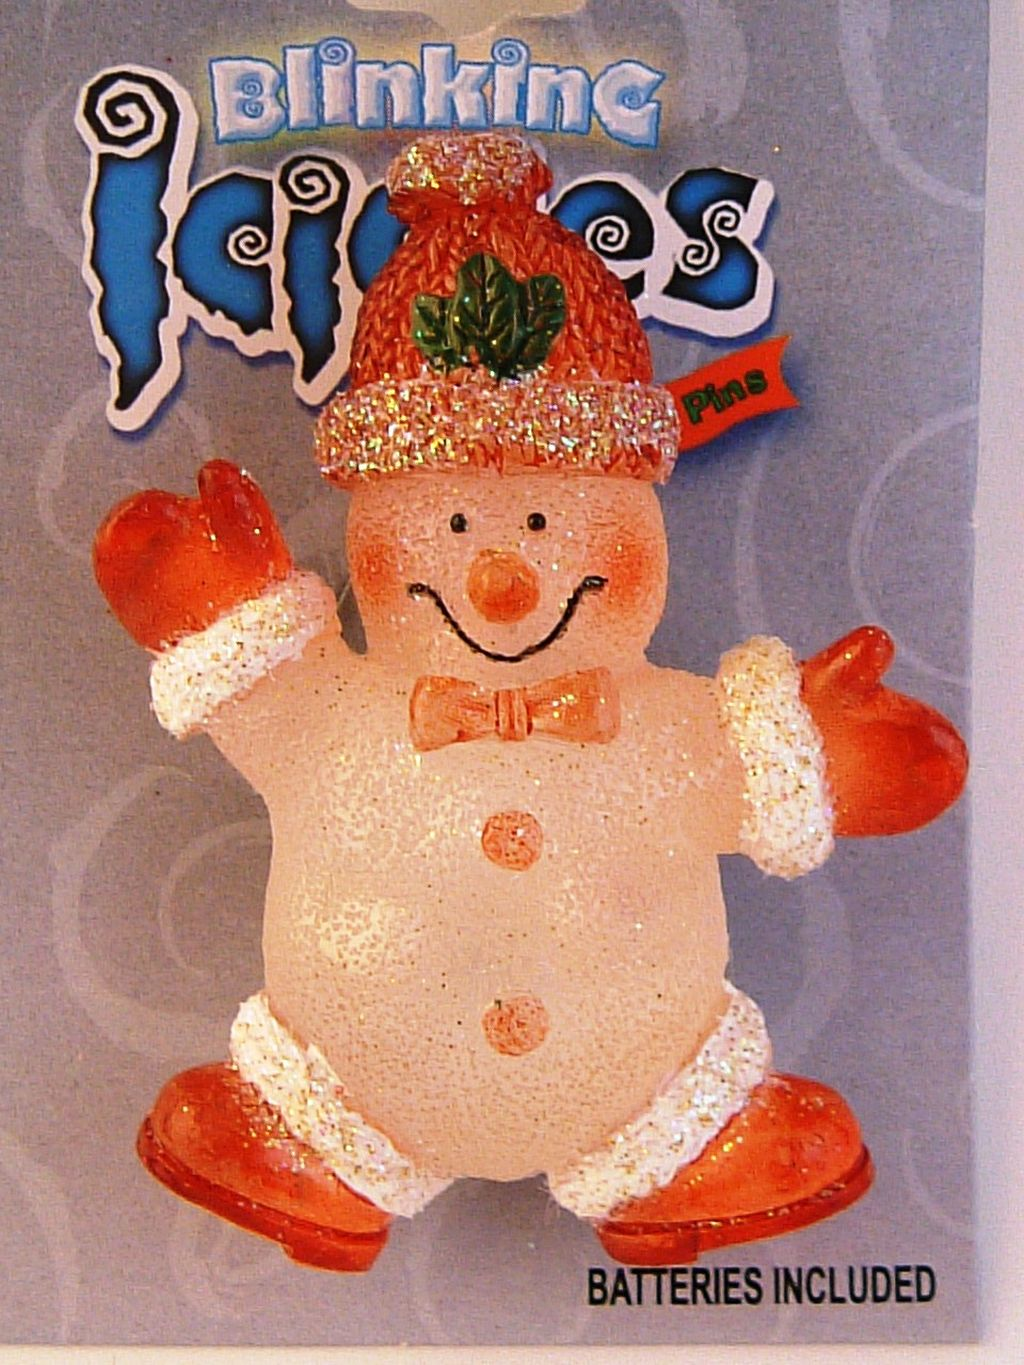 Blinking Icicle Christmas Lights Orange Snowman Brooch Pin, Batteries Included